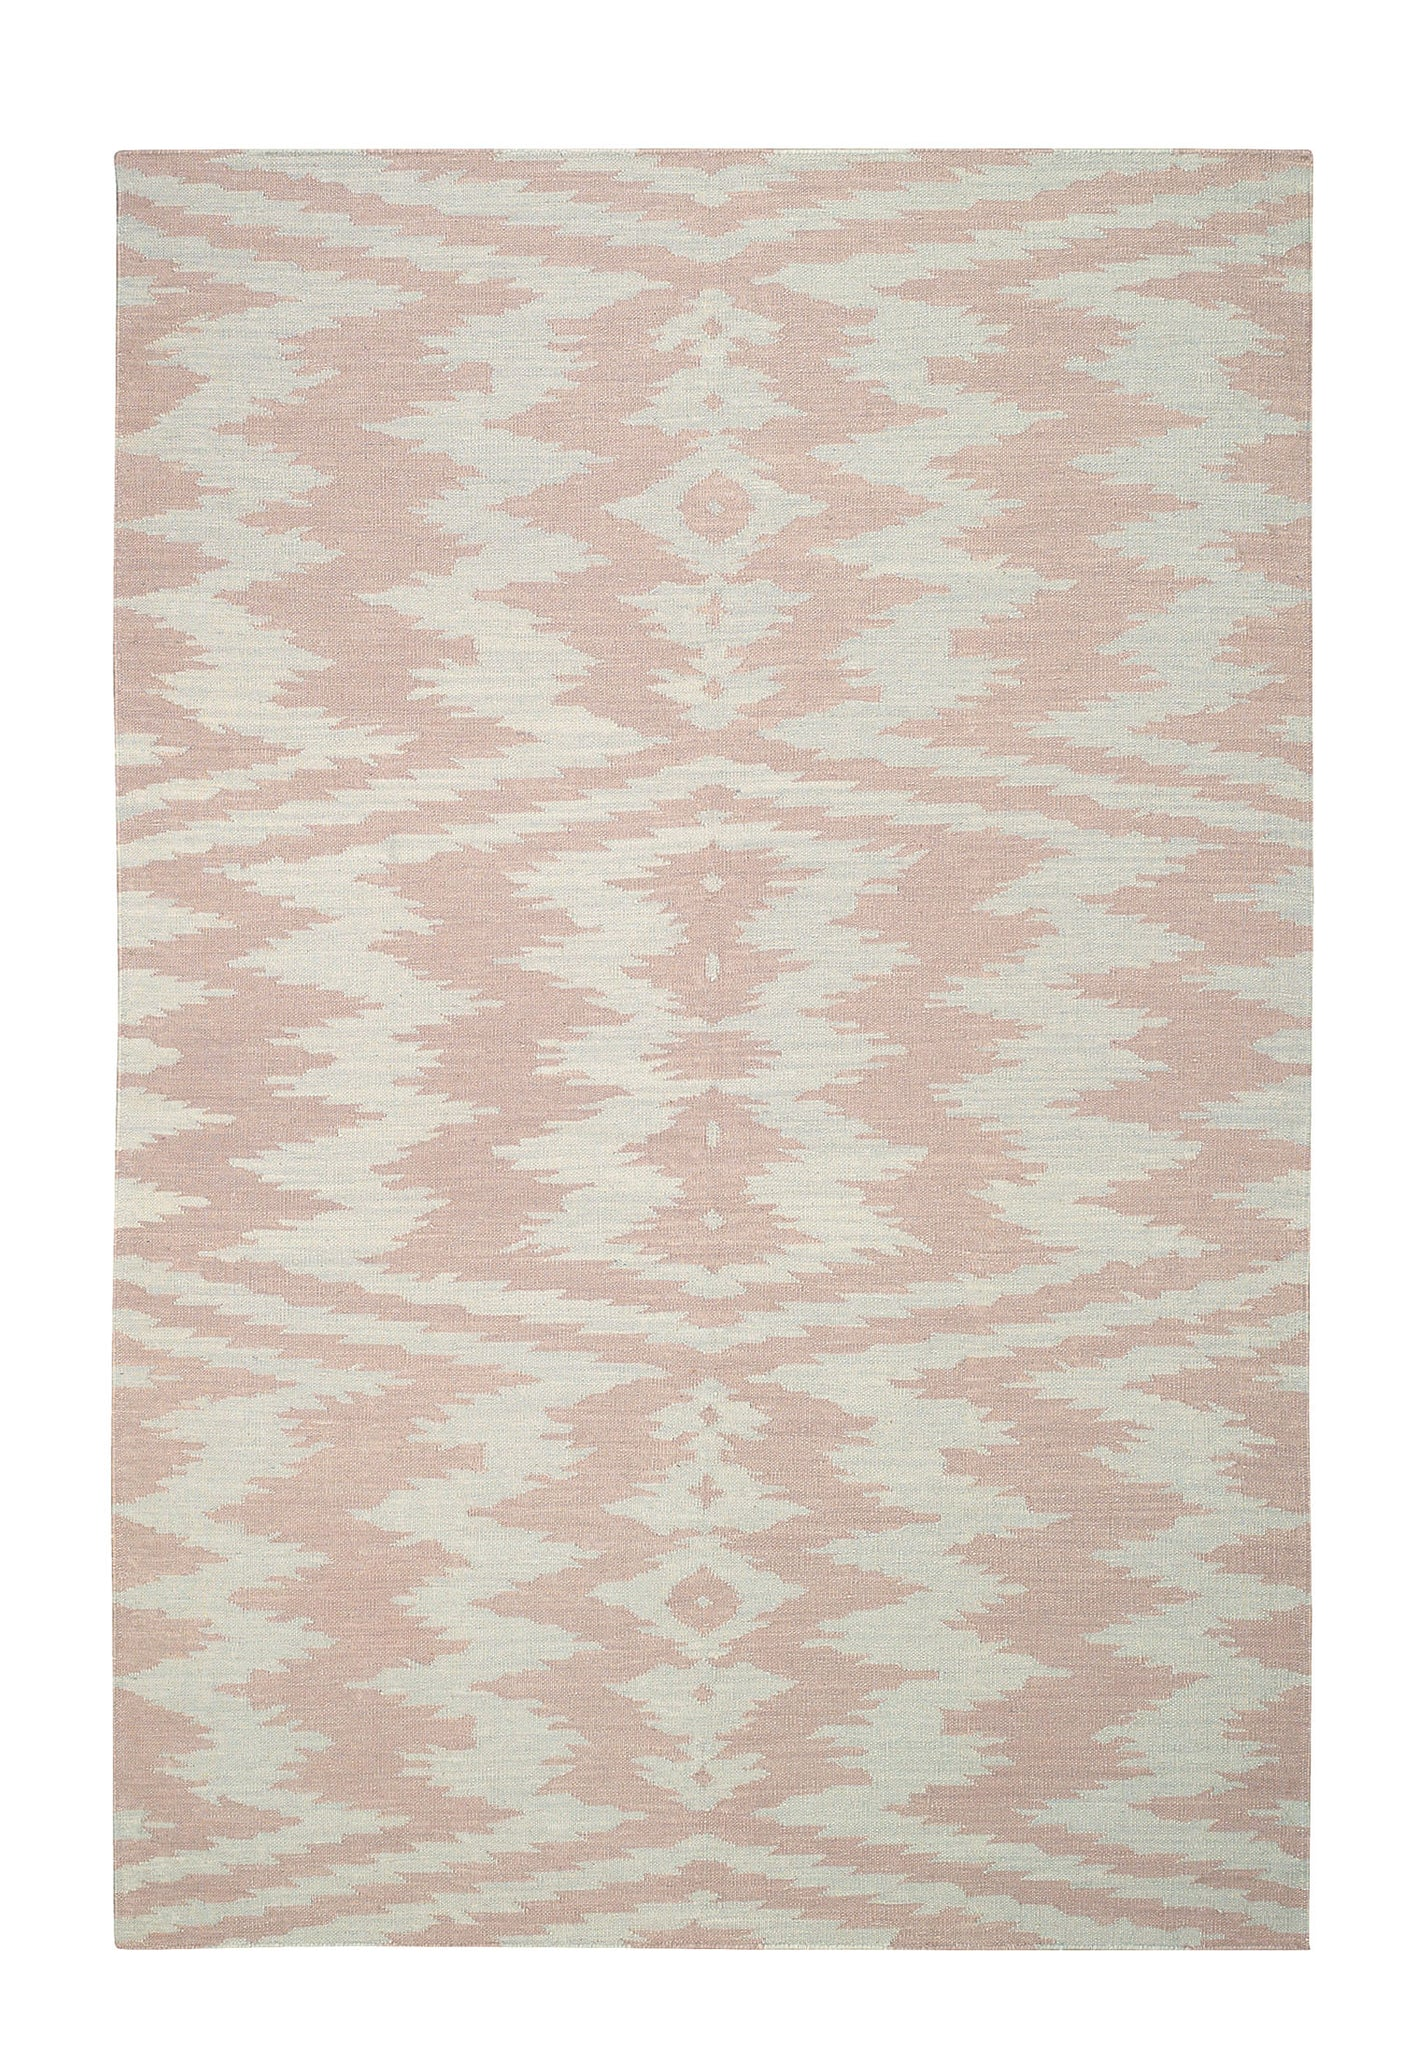 Capel Junction 3625 Pink 500 Area Rug by Genevieve Gorder main image